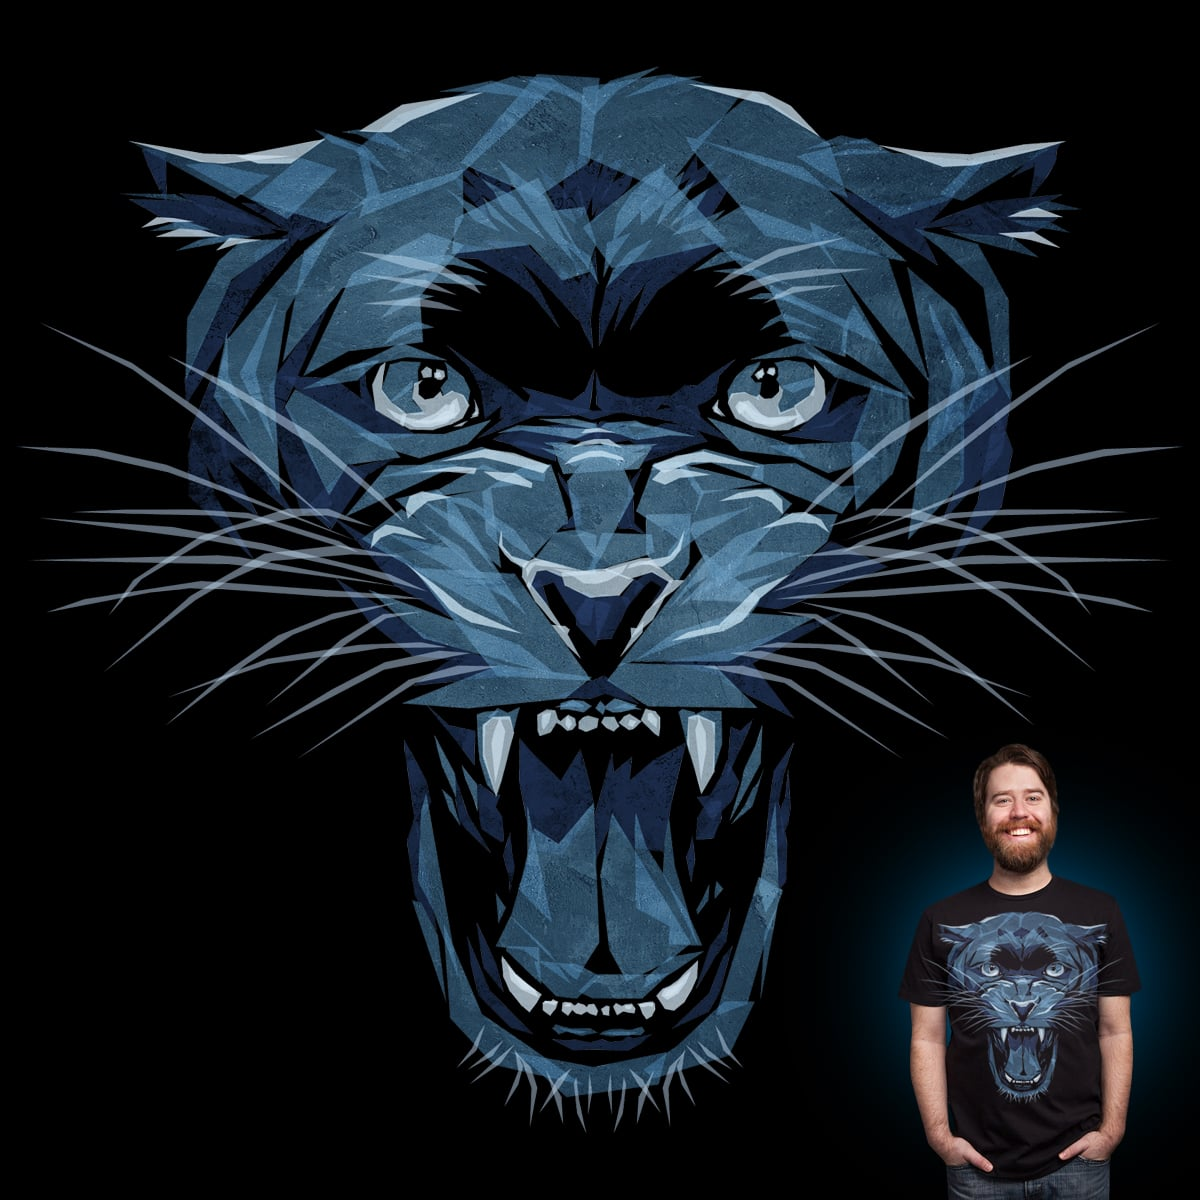 Panther by Joe Conde on Threadless